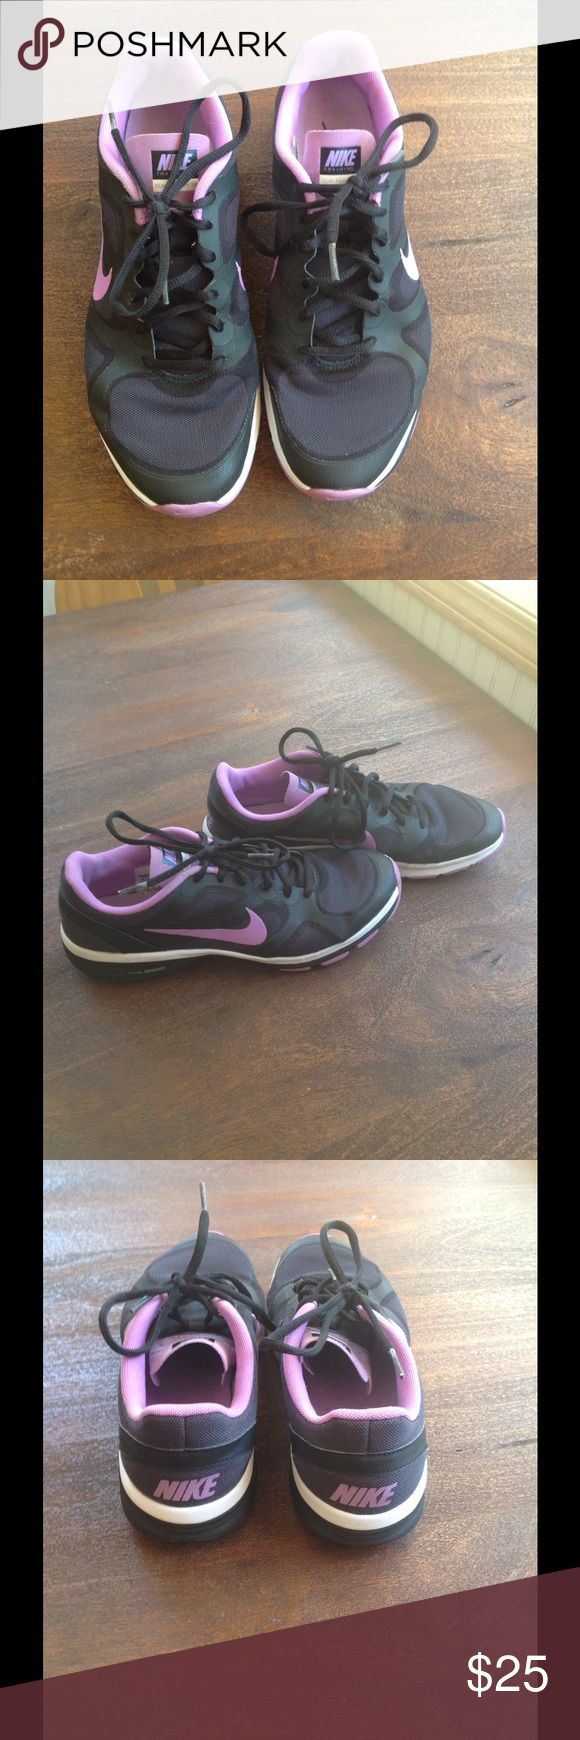 Nike Dual Fusion Running Shoes Great used condition. Slight wear but still in awesome shape. Dual fusion. Black and purple. Women's 9.5. Nike Shoes Sneakers